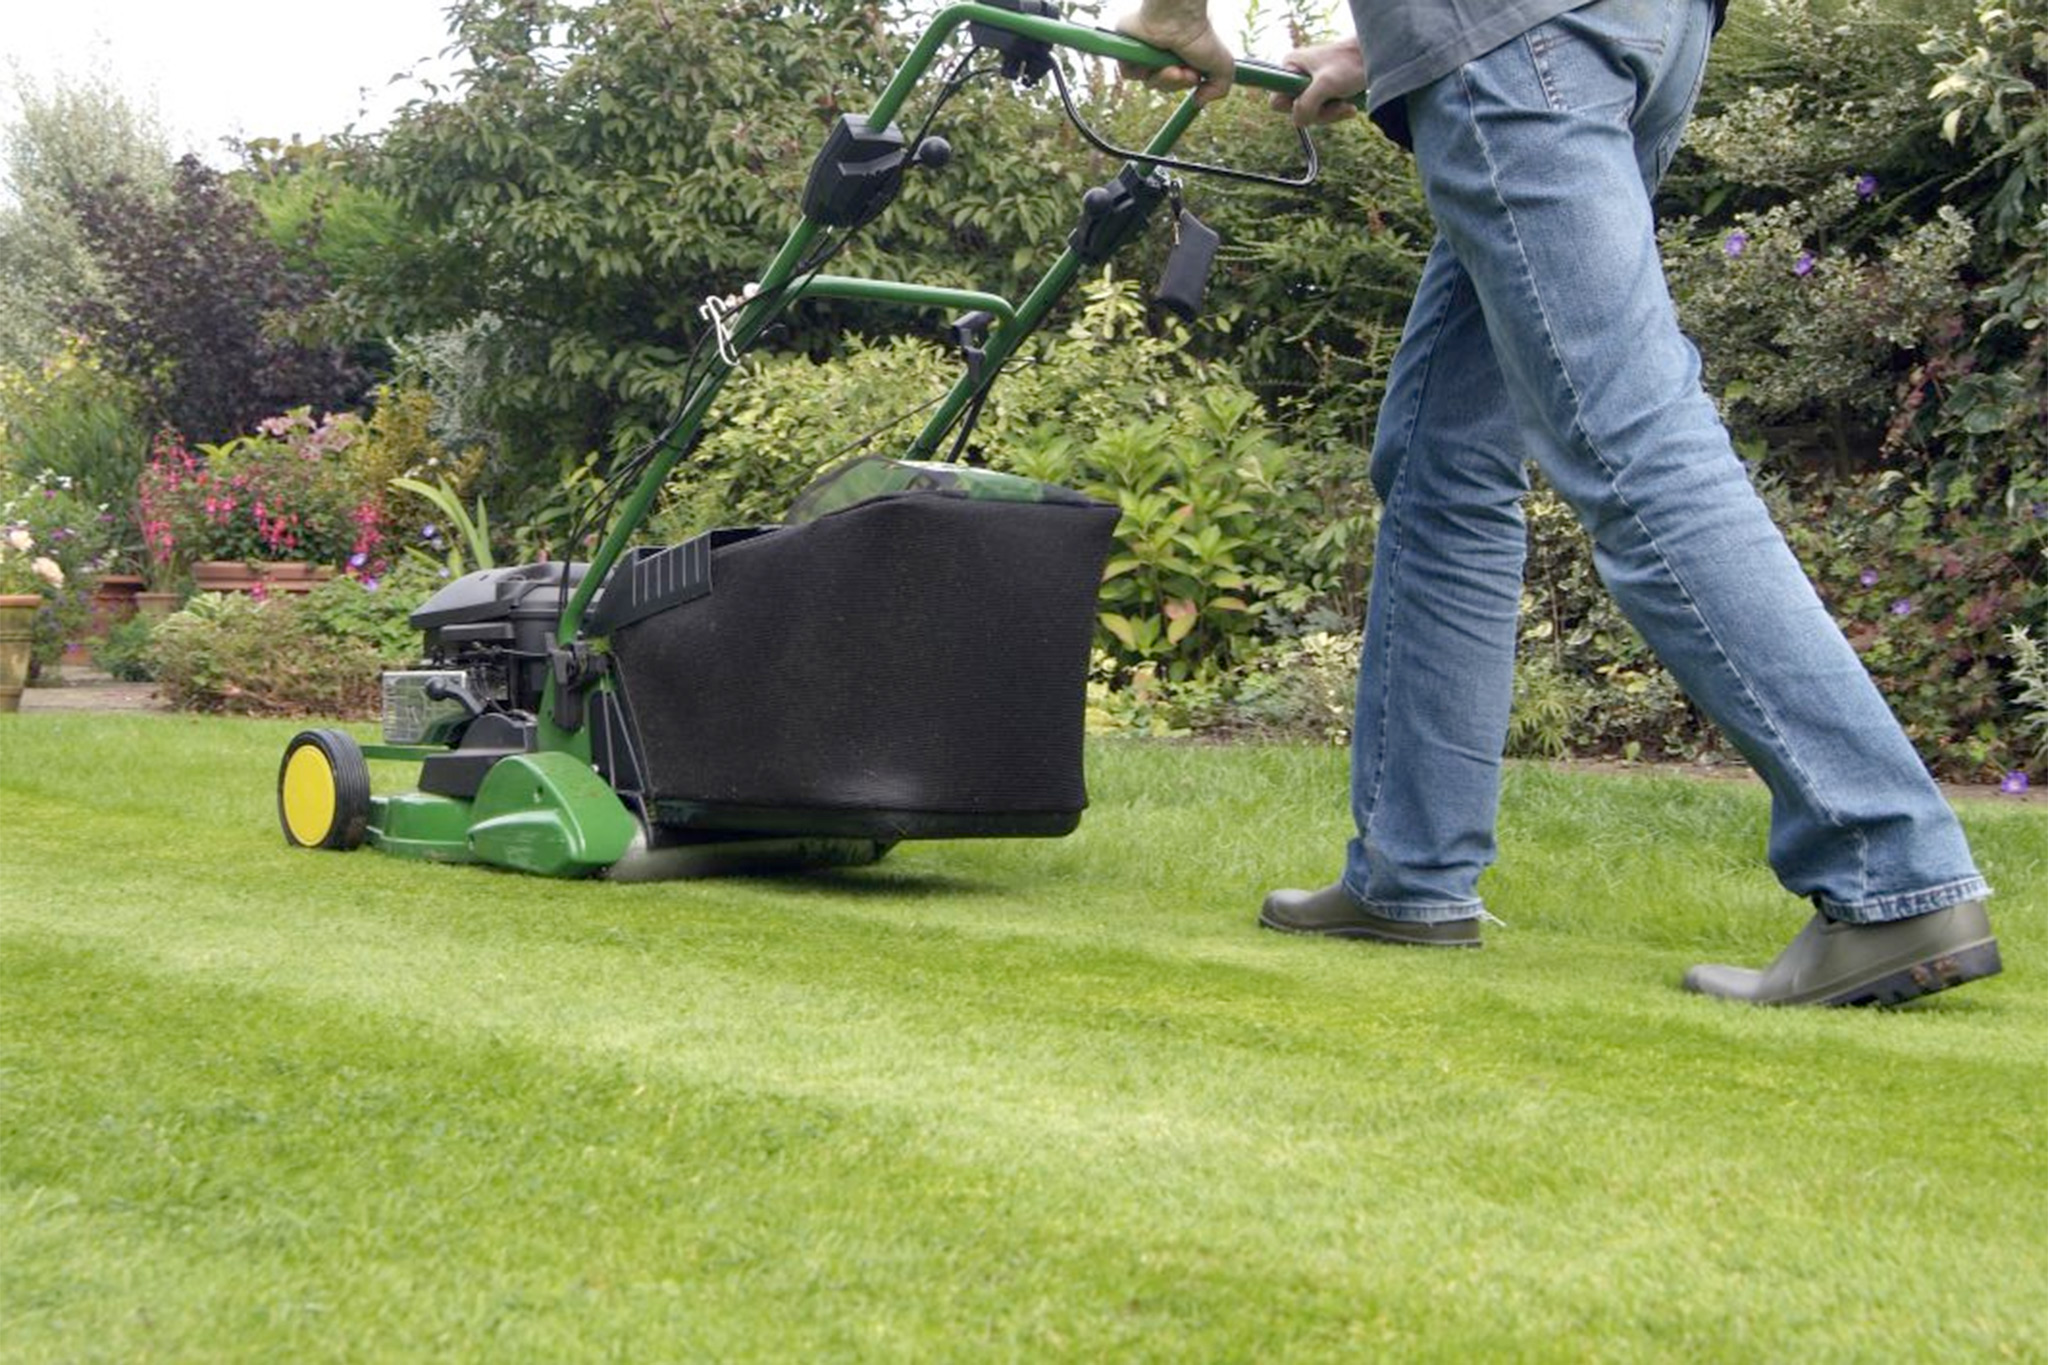 12 lawn mowing tips for Lawn mower cutting grass